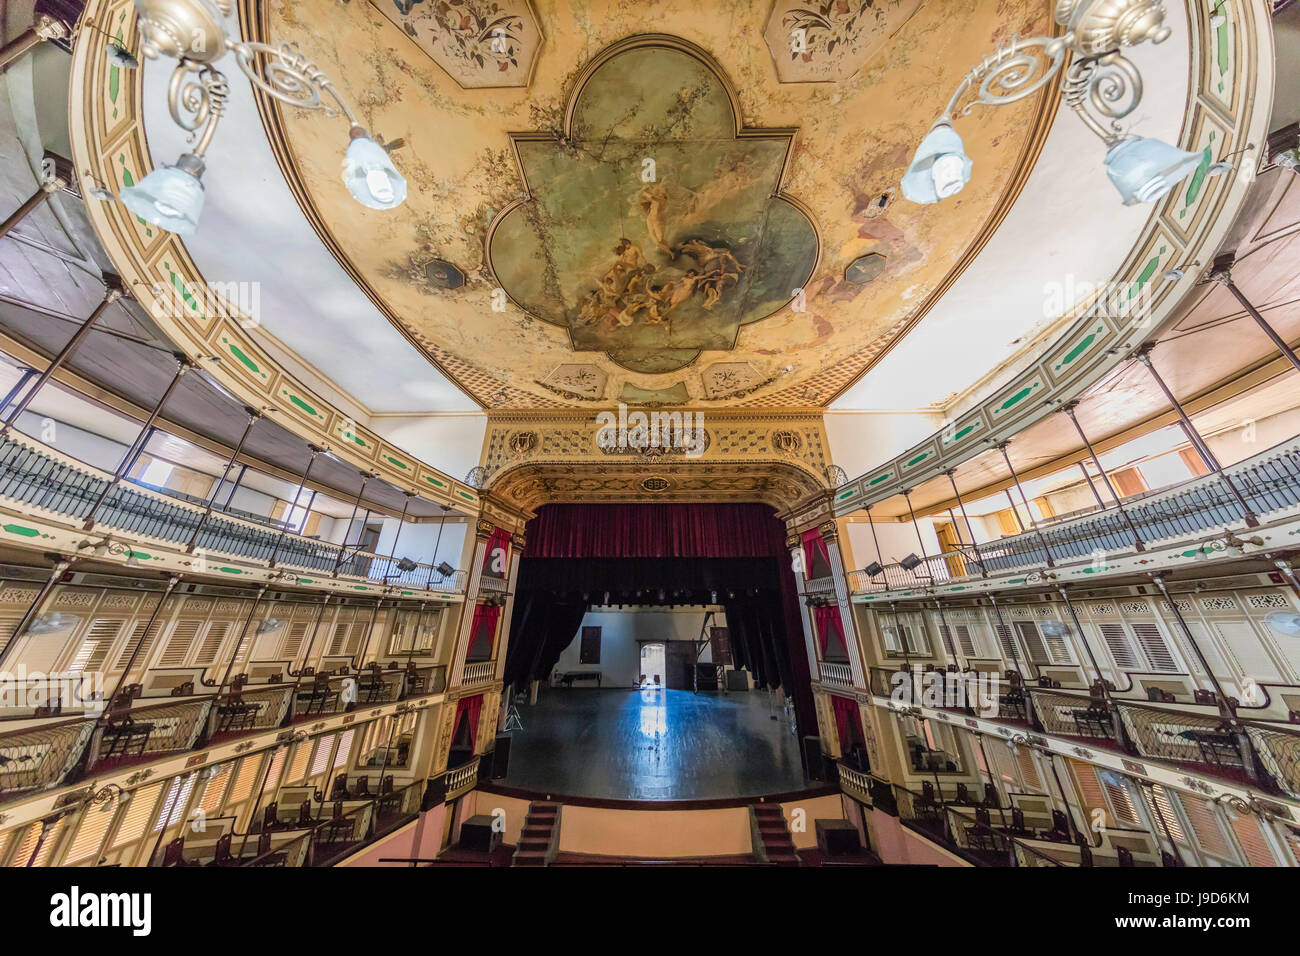 Interior view of the Teatro Tomas Terry (Tomas Terry Theatre), opened in 1890 in the city of Cienfuegos, UNESCO, - Stock Image